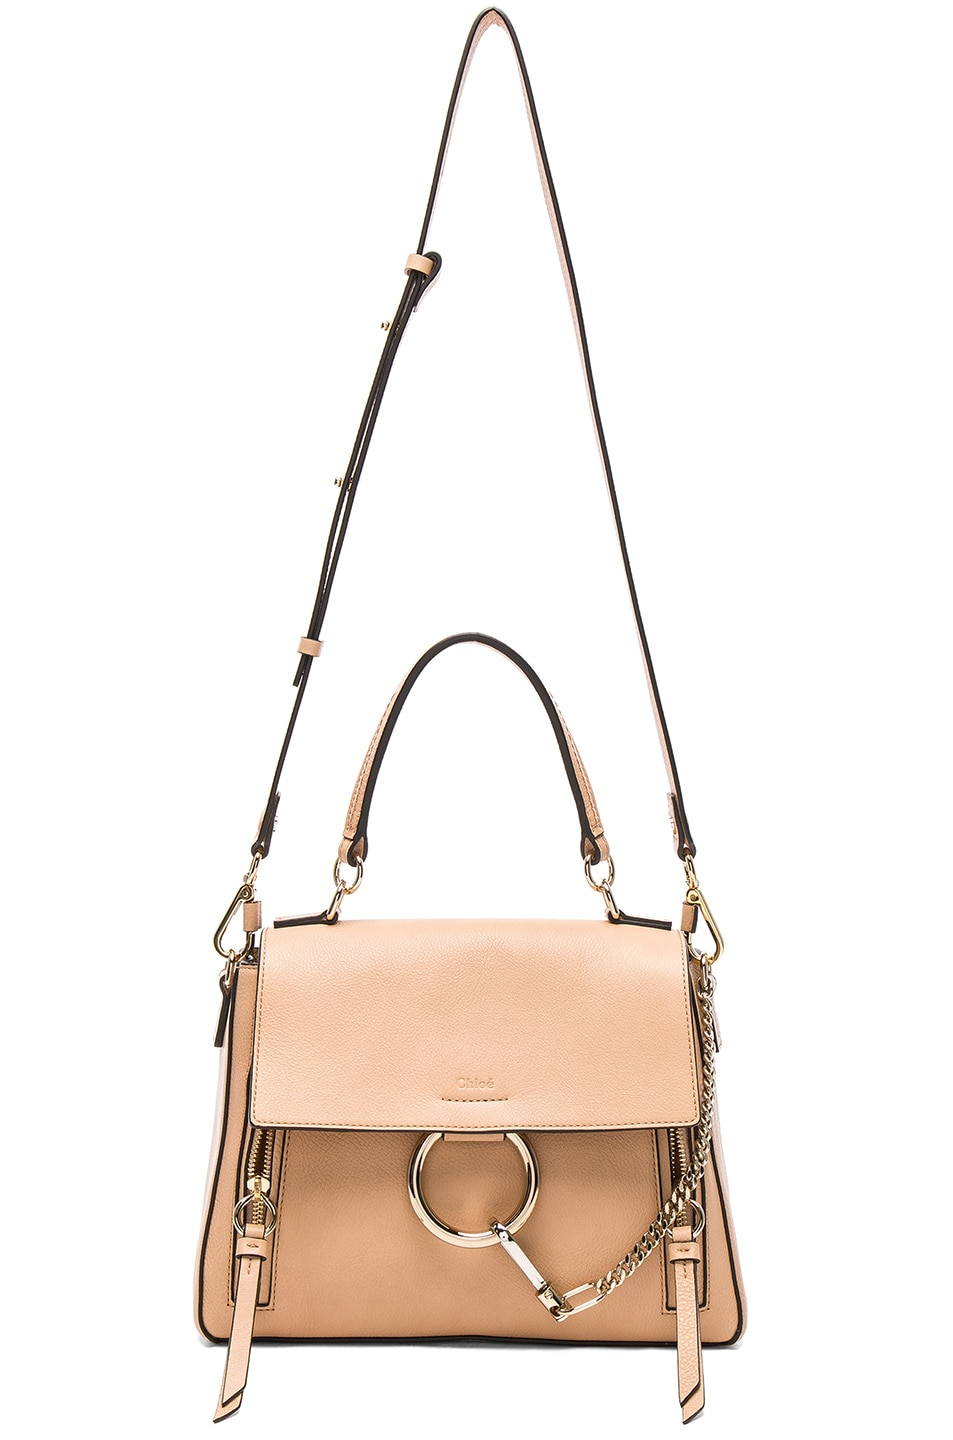 Image 6 of Chloe Small Faye Calfskin & Suede Day Bag in Blush Nude